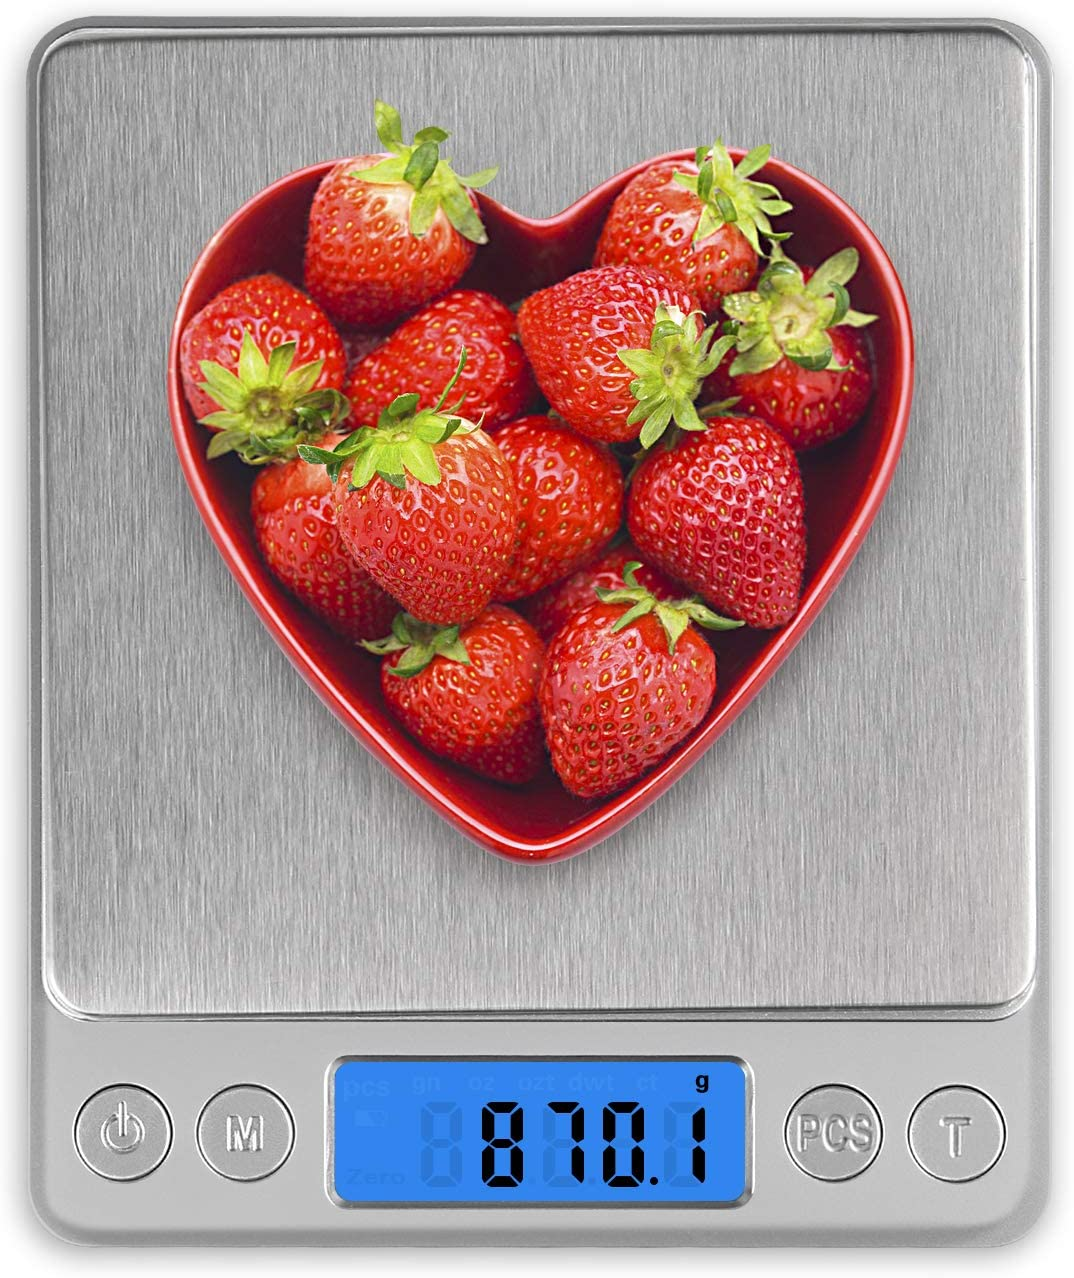 Food Scale Gram Scale with 2 Trays 0.1g-3000g/6.6lb Weight Grams and Oz for Baking, Scale for Food, Stainless Steel Platform